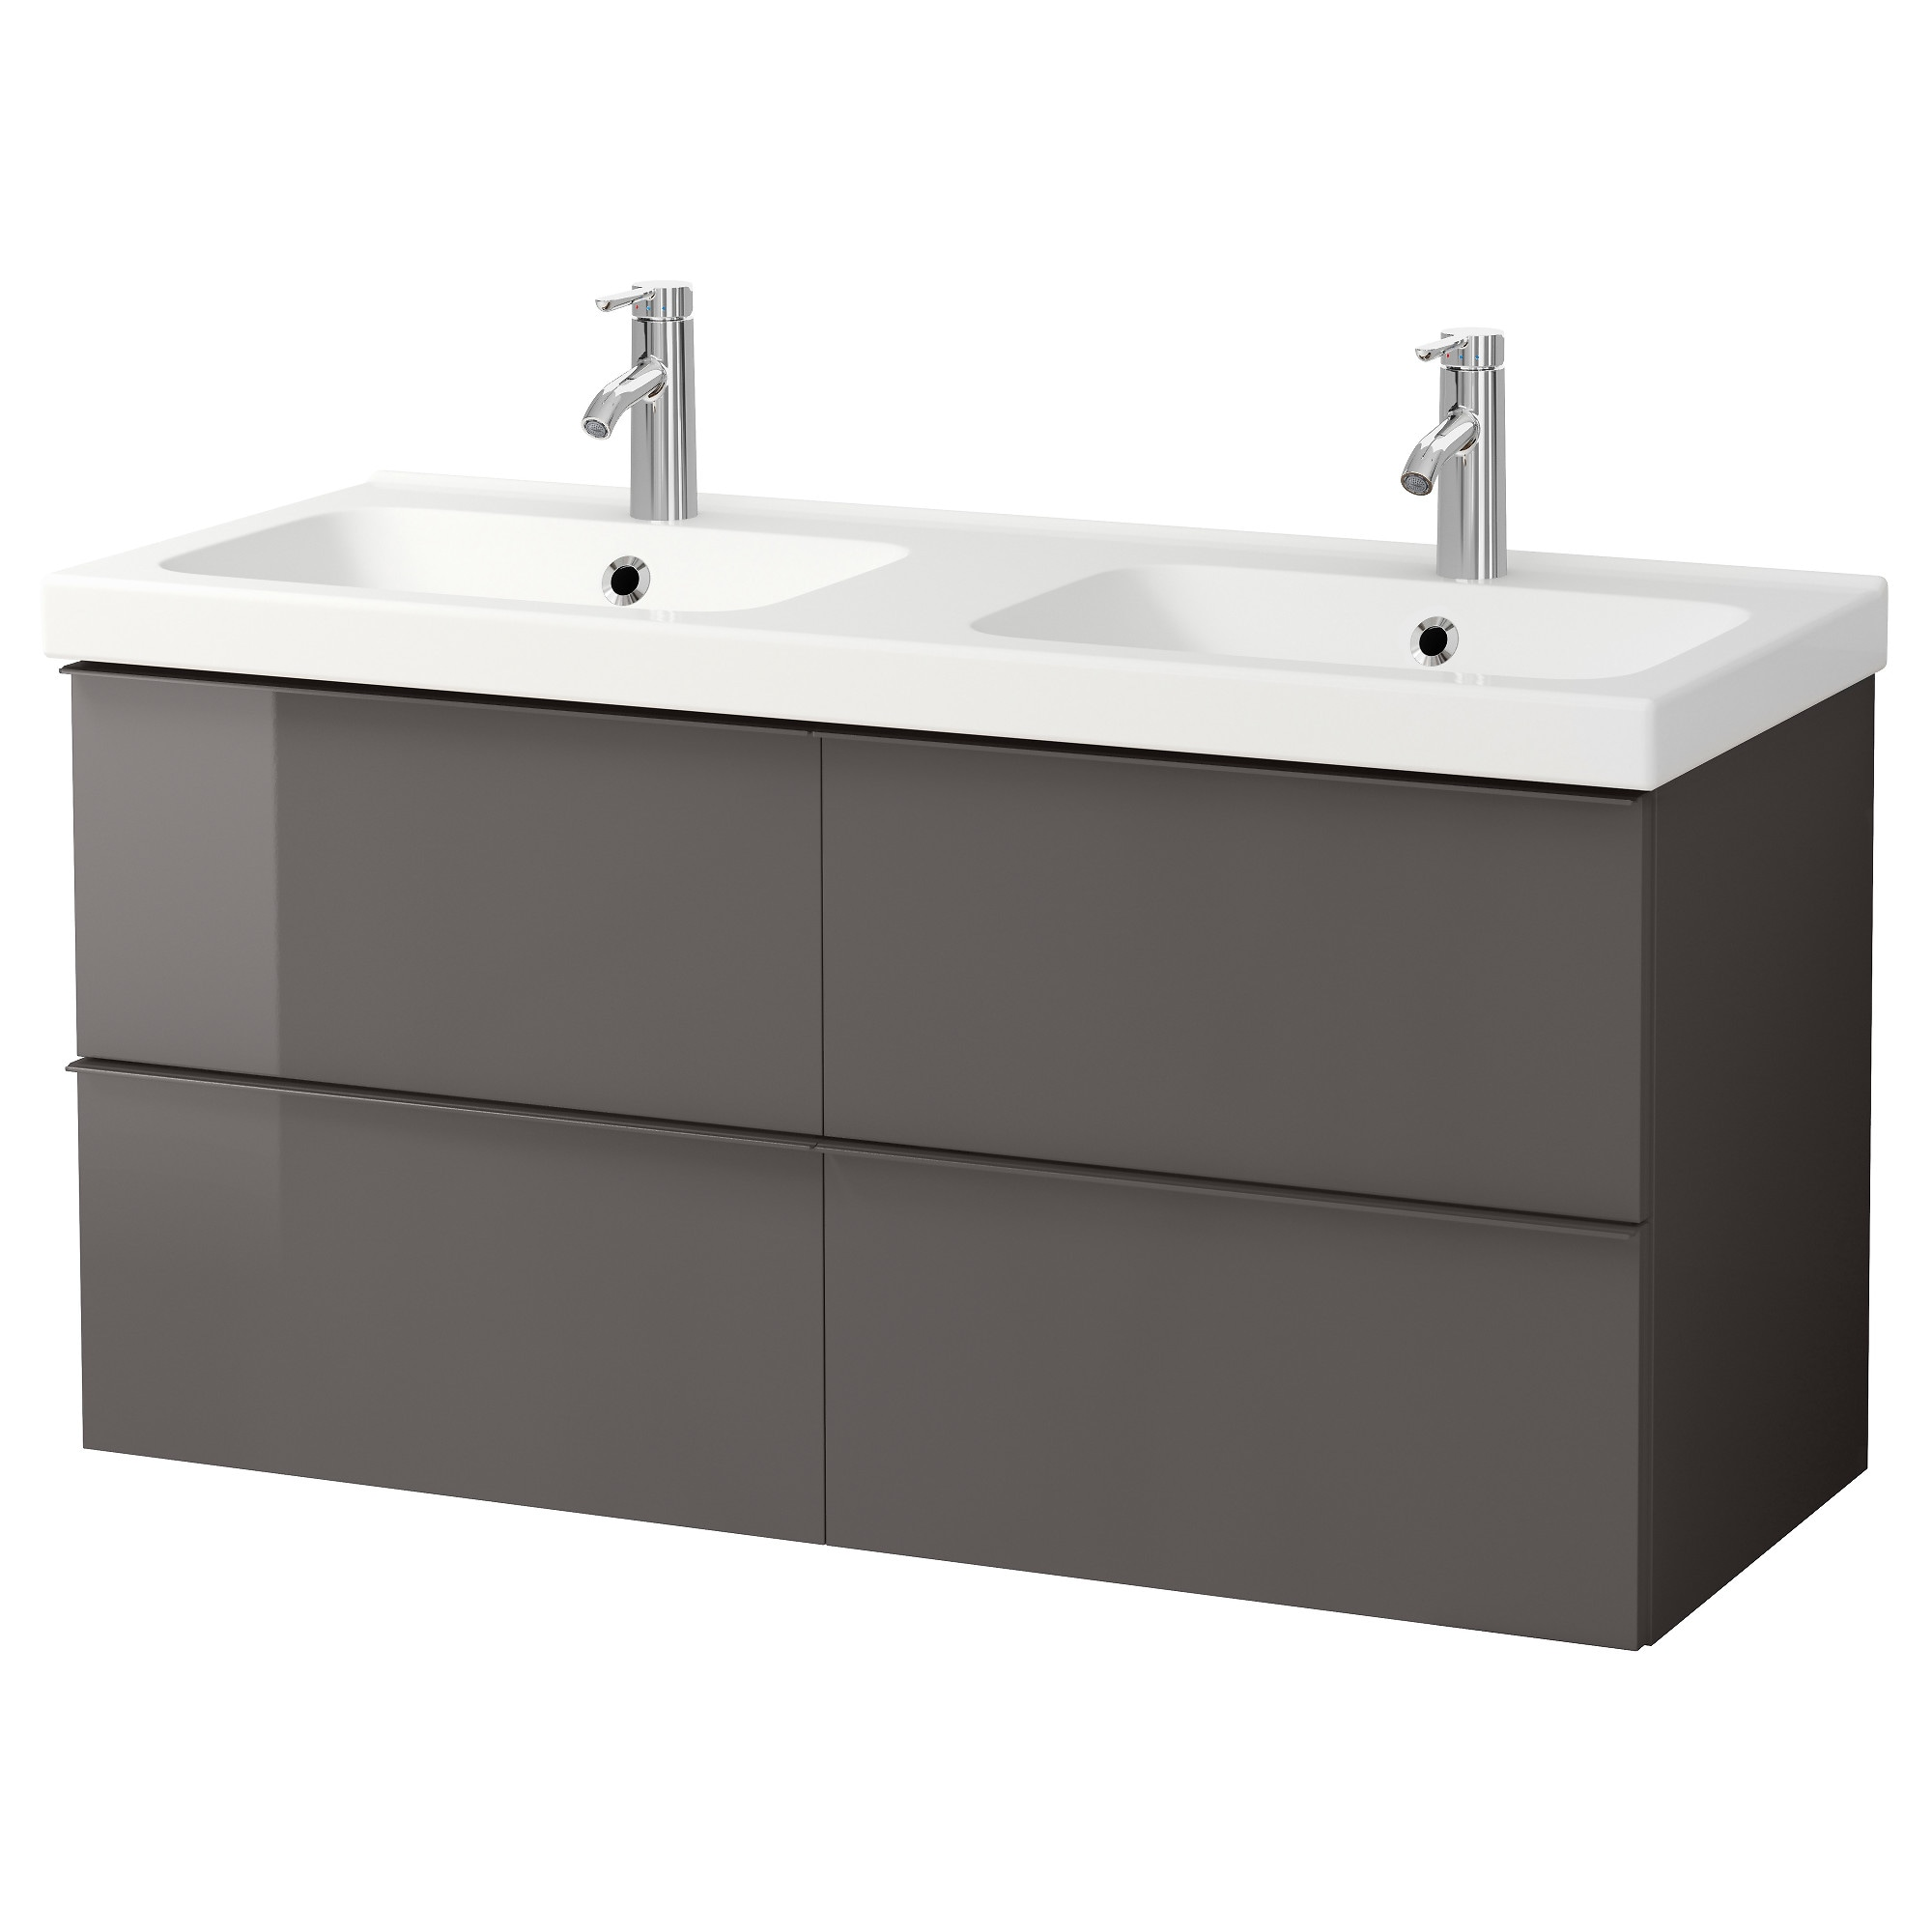 Odensvik Sink Cabinet With 4 Drawers, High Gloss Gray Width: 48  3